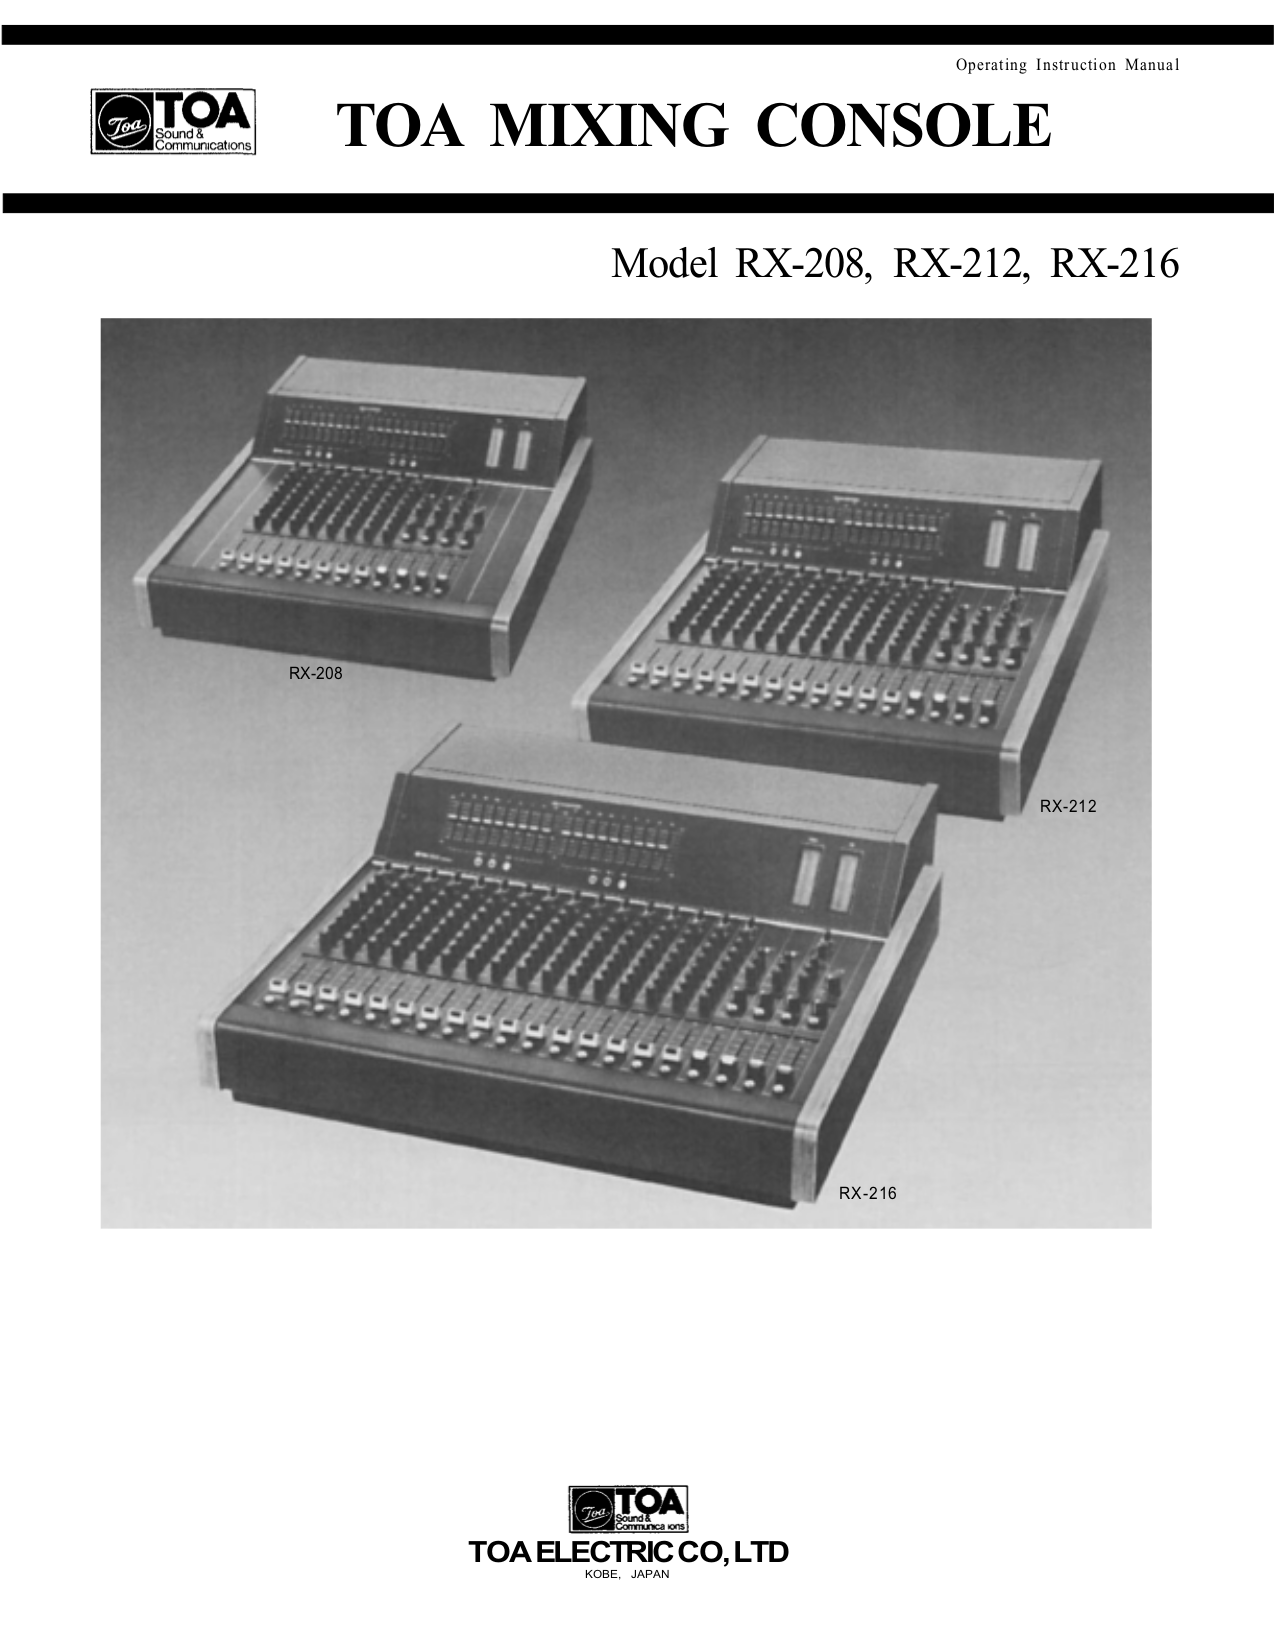 Download free pdf for Toa RX-31C Mixing Consoles Other manual